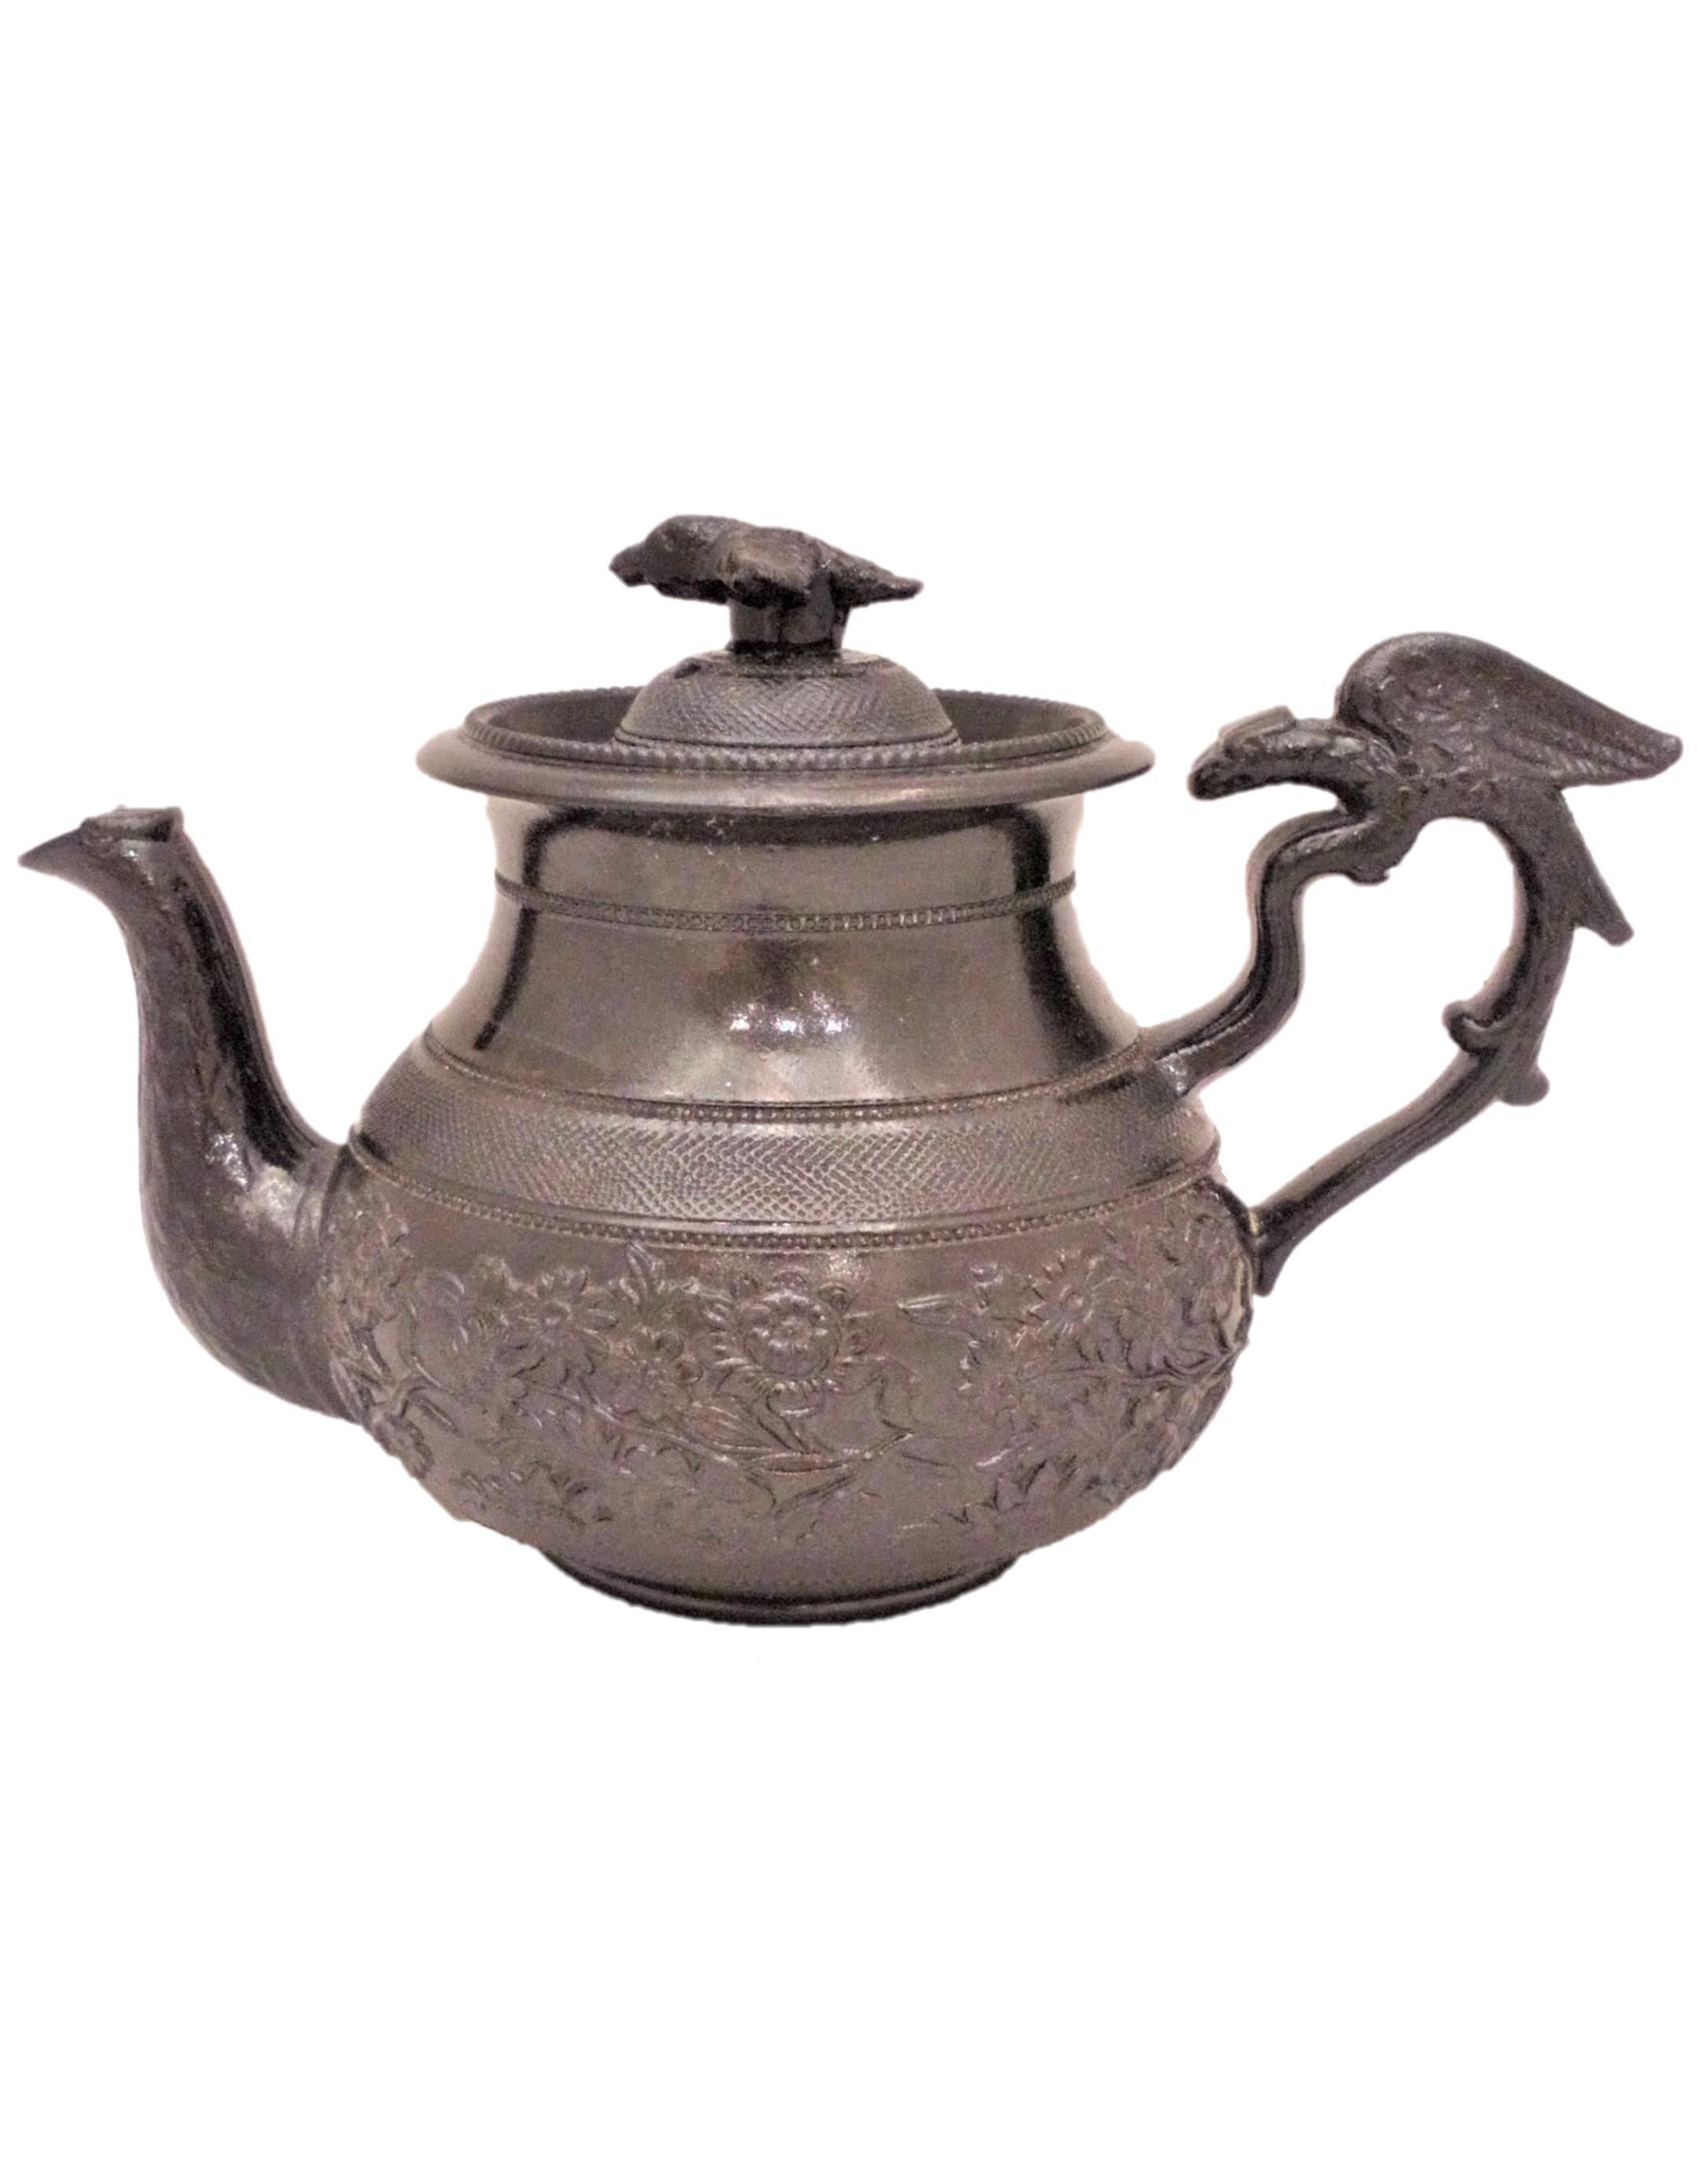 An antique Cyples Egyptian black floral sprigged baluster shaped glazed basalt teapot with an eagle handle and bird finial circa 1830